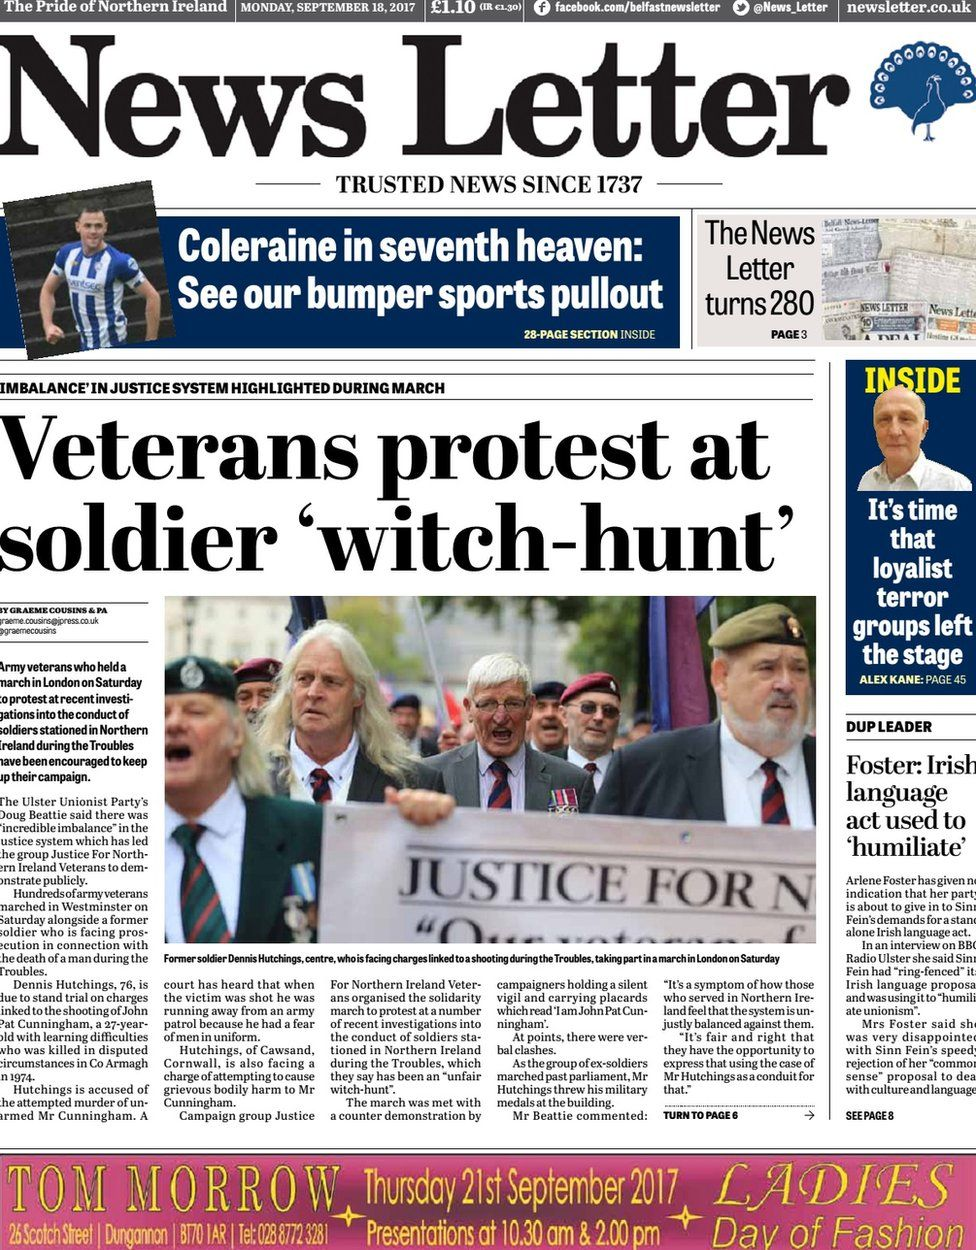 News Letter front page Monday 18 September